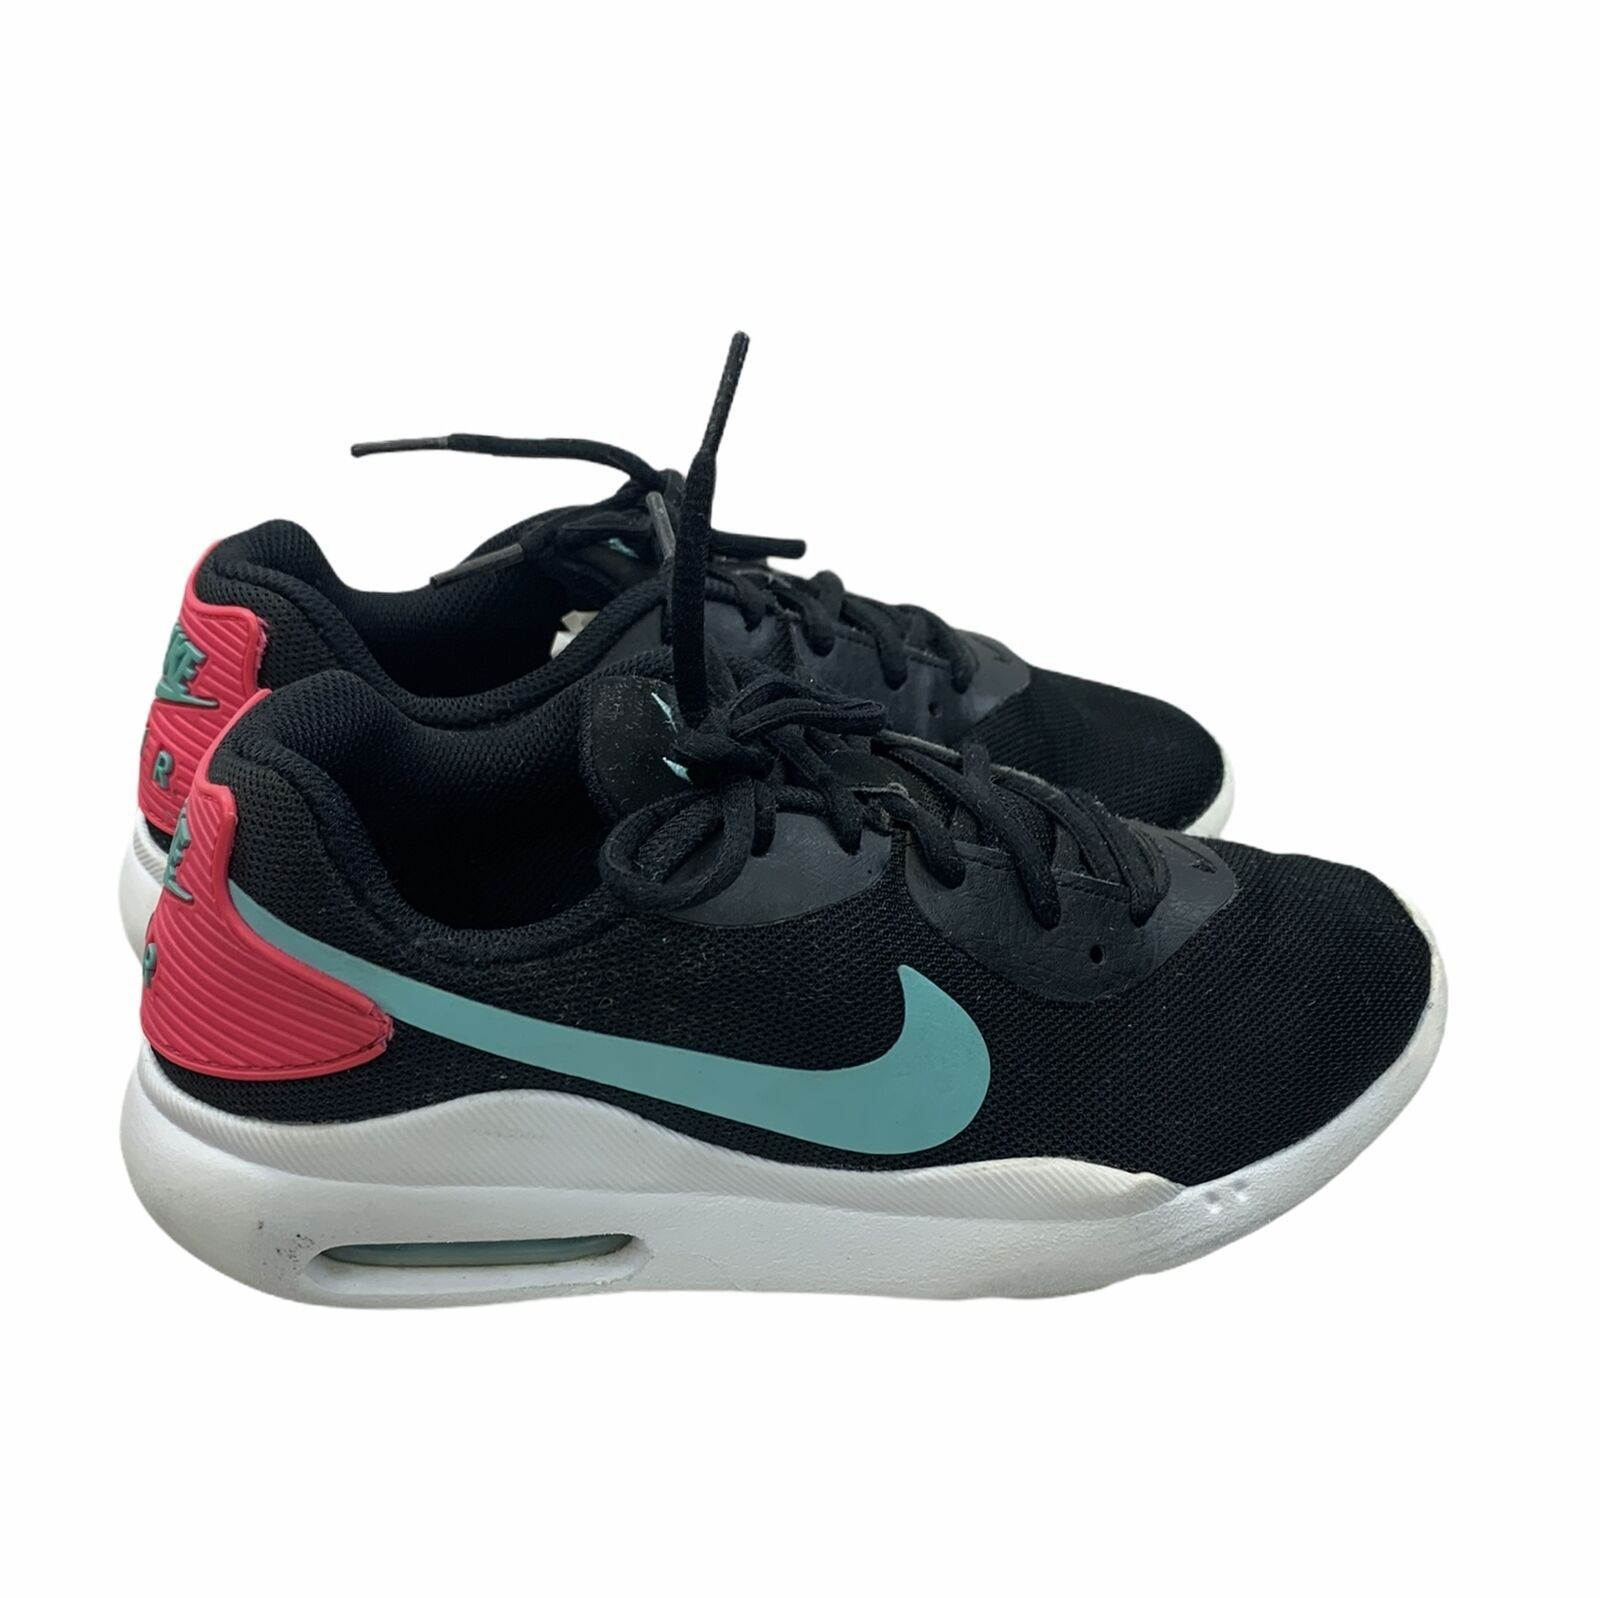 Primary image for Nike Air Max Oketo Black Aurora Pink CT1543-001 Size 7.5 Womens